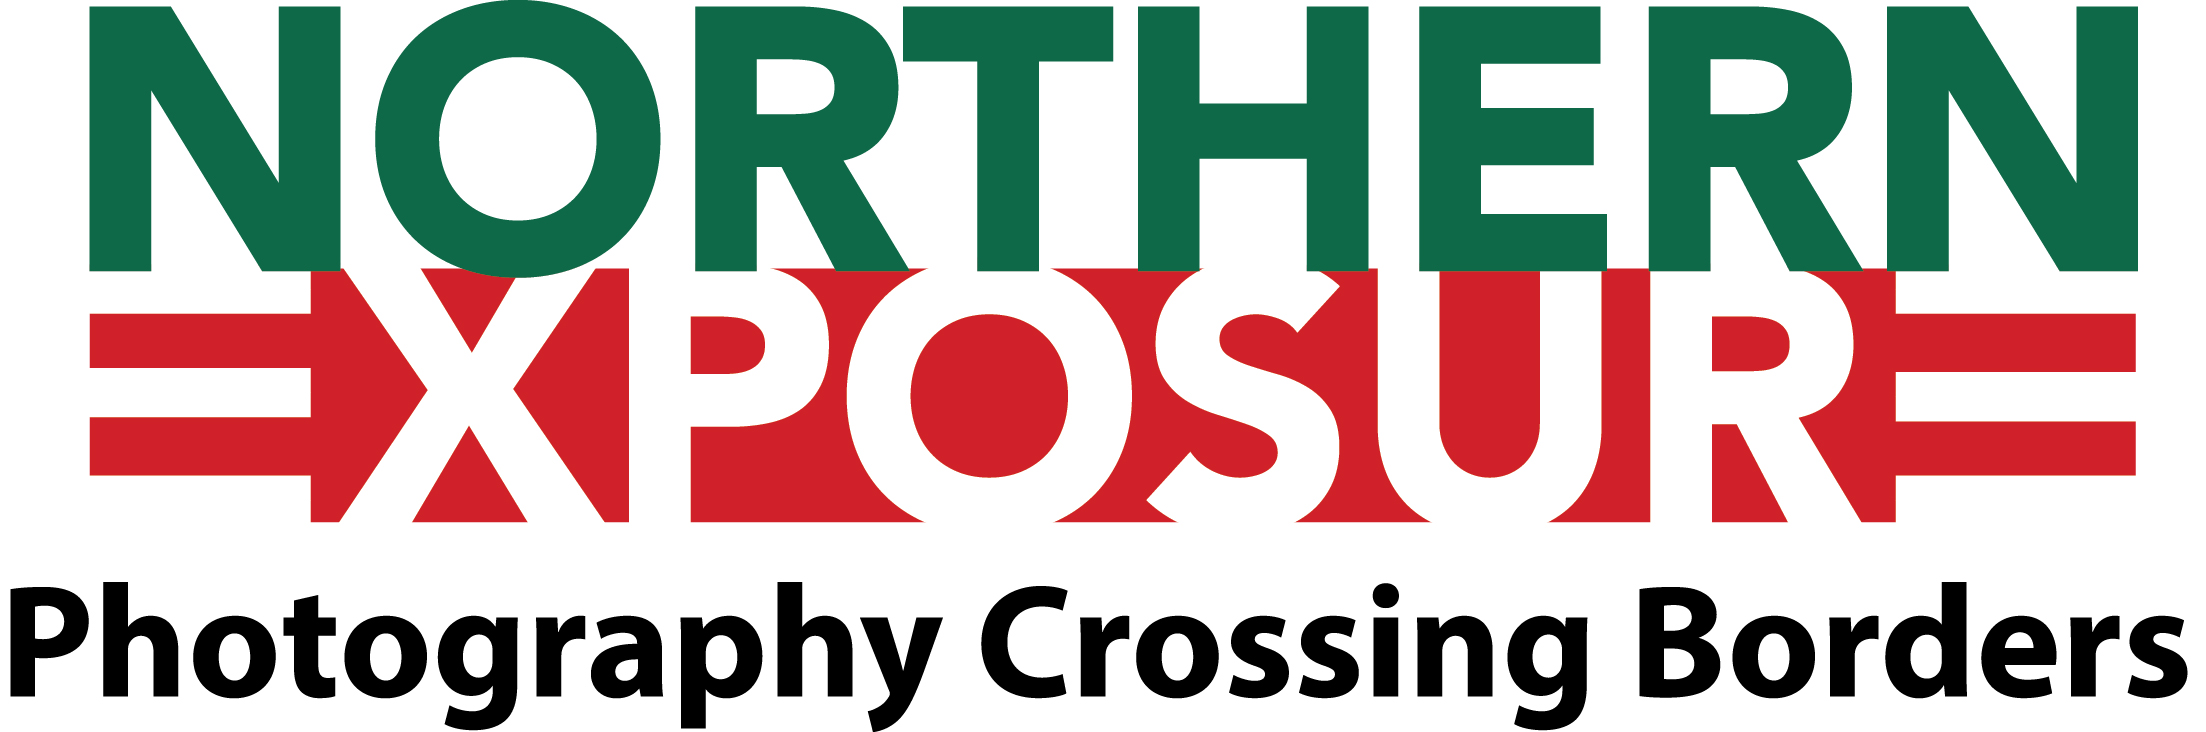 LOGO-northern exposure outlines.jpg